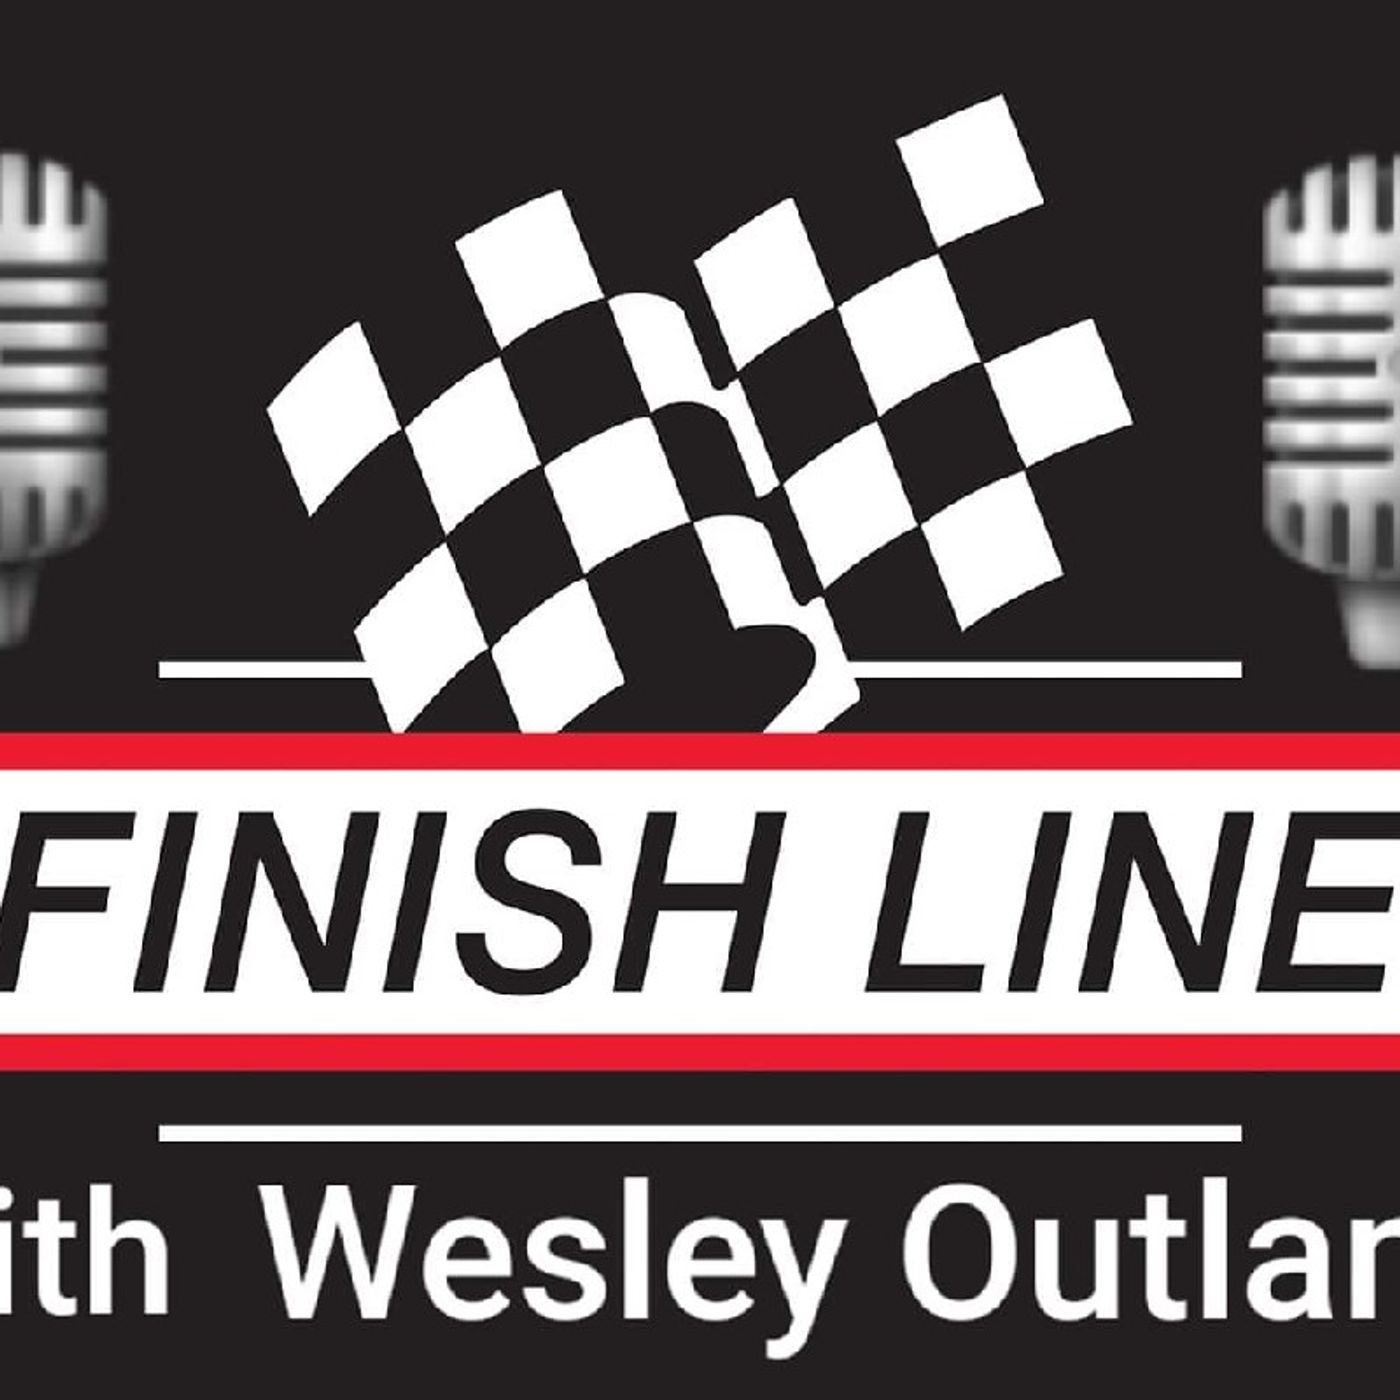 August 7th #FinishLine Motorsports Podcast Show w/ guests Bubba Pollard, Tyler Carpenter, Colten Burdette & Phil Combs! 🏁🎙🏁